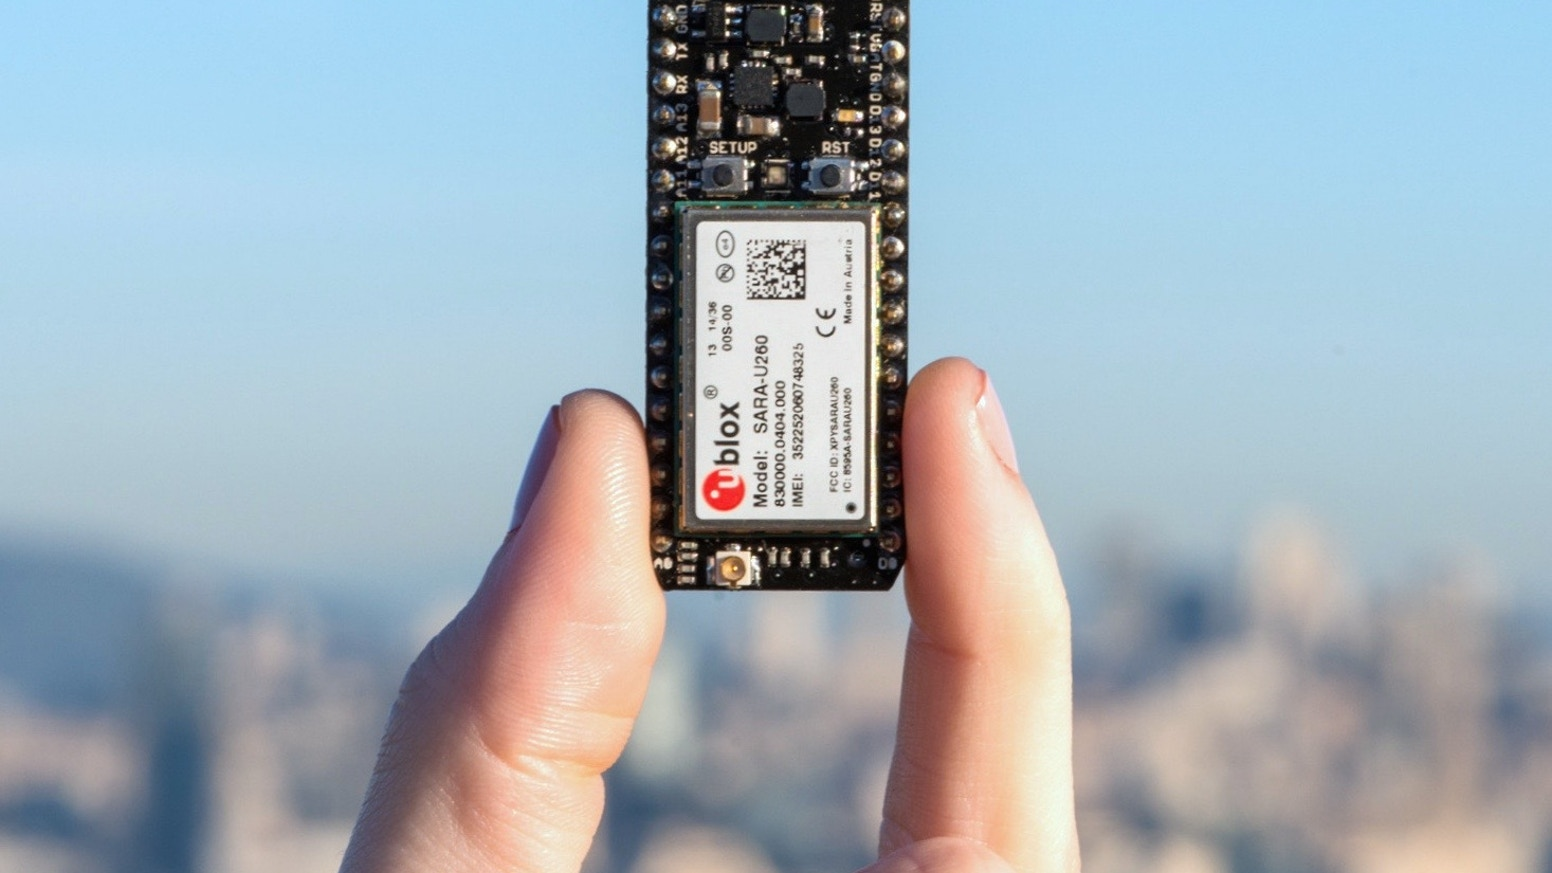 The Electron Cellular Dev Kit With A Global Data Plan By Spark Io Smart Phone Circuit Board Details Like Sim Card And Other Image Is An Arduino Development Affordable